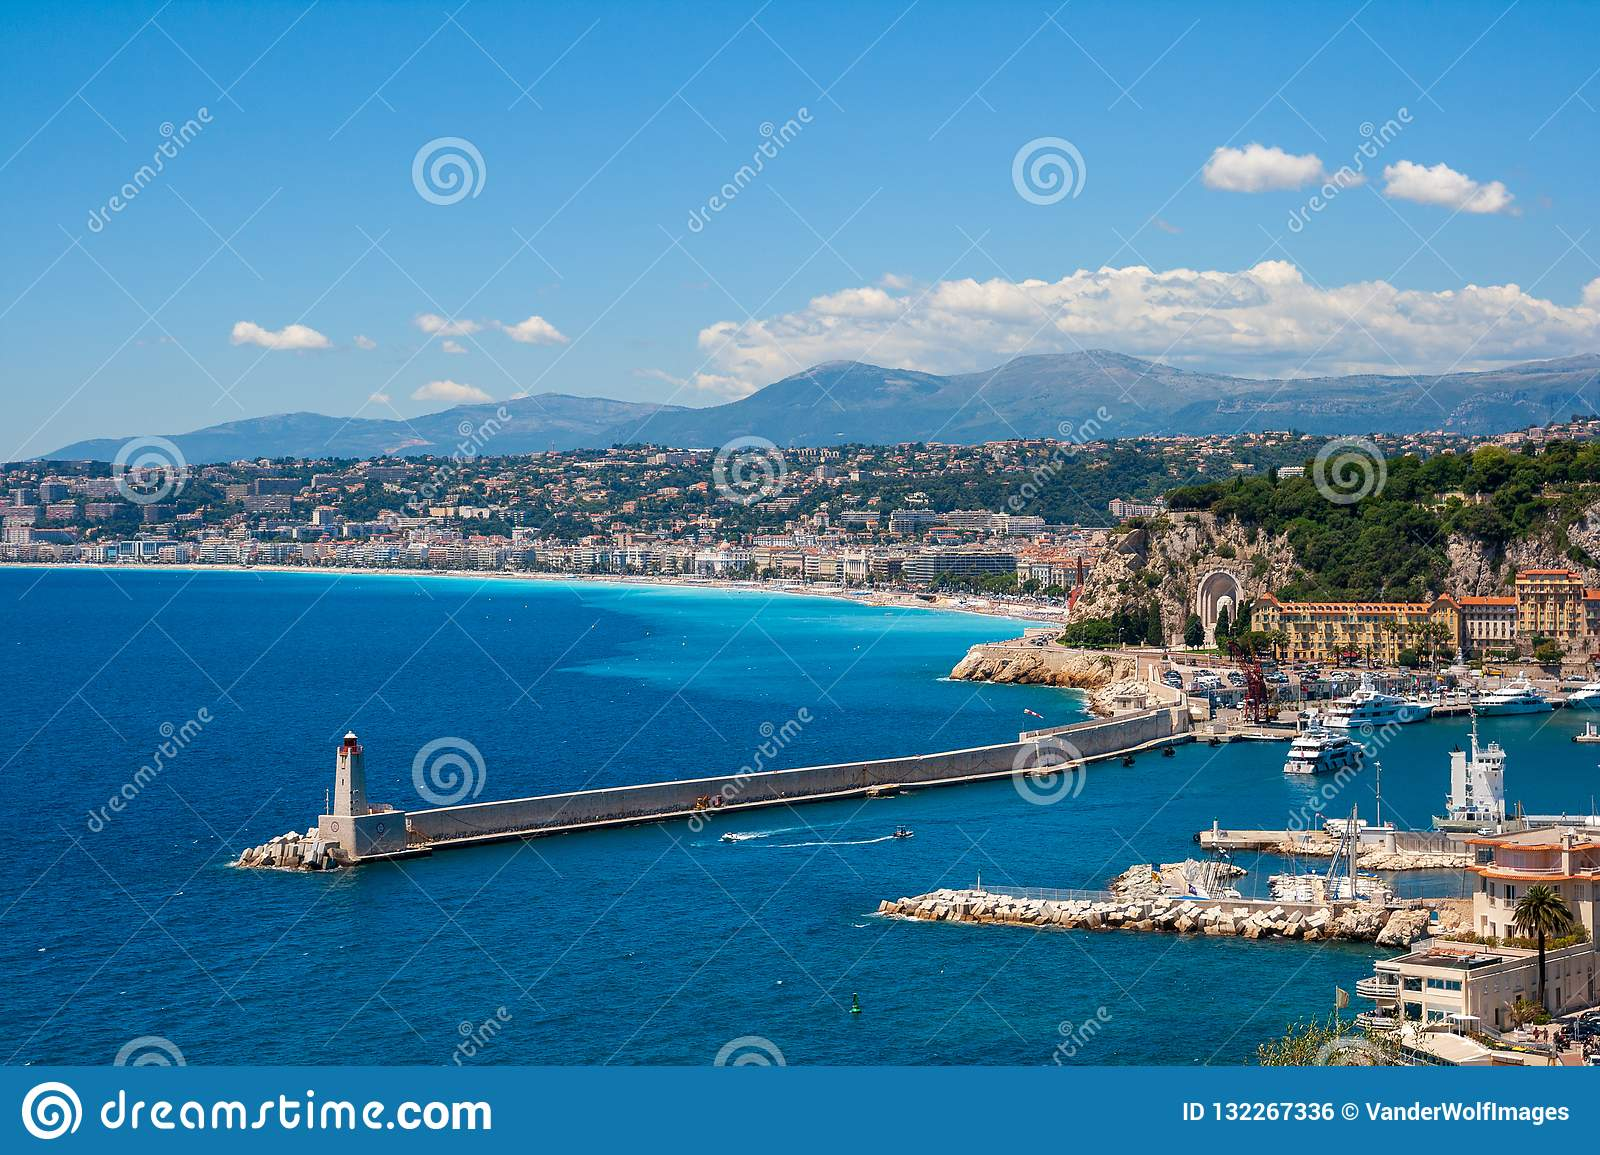 Coastline of Nice city in Southern France